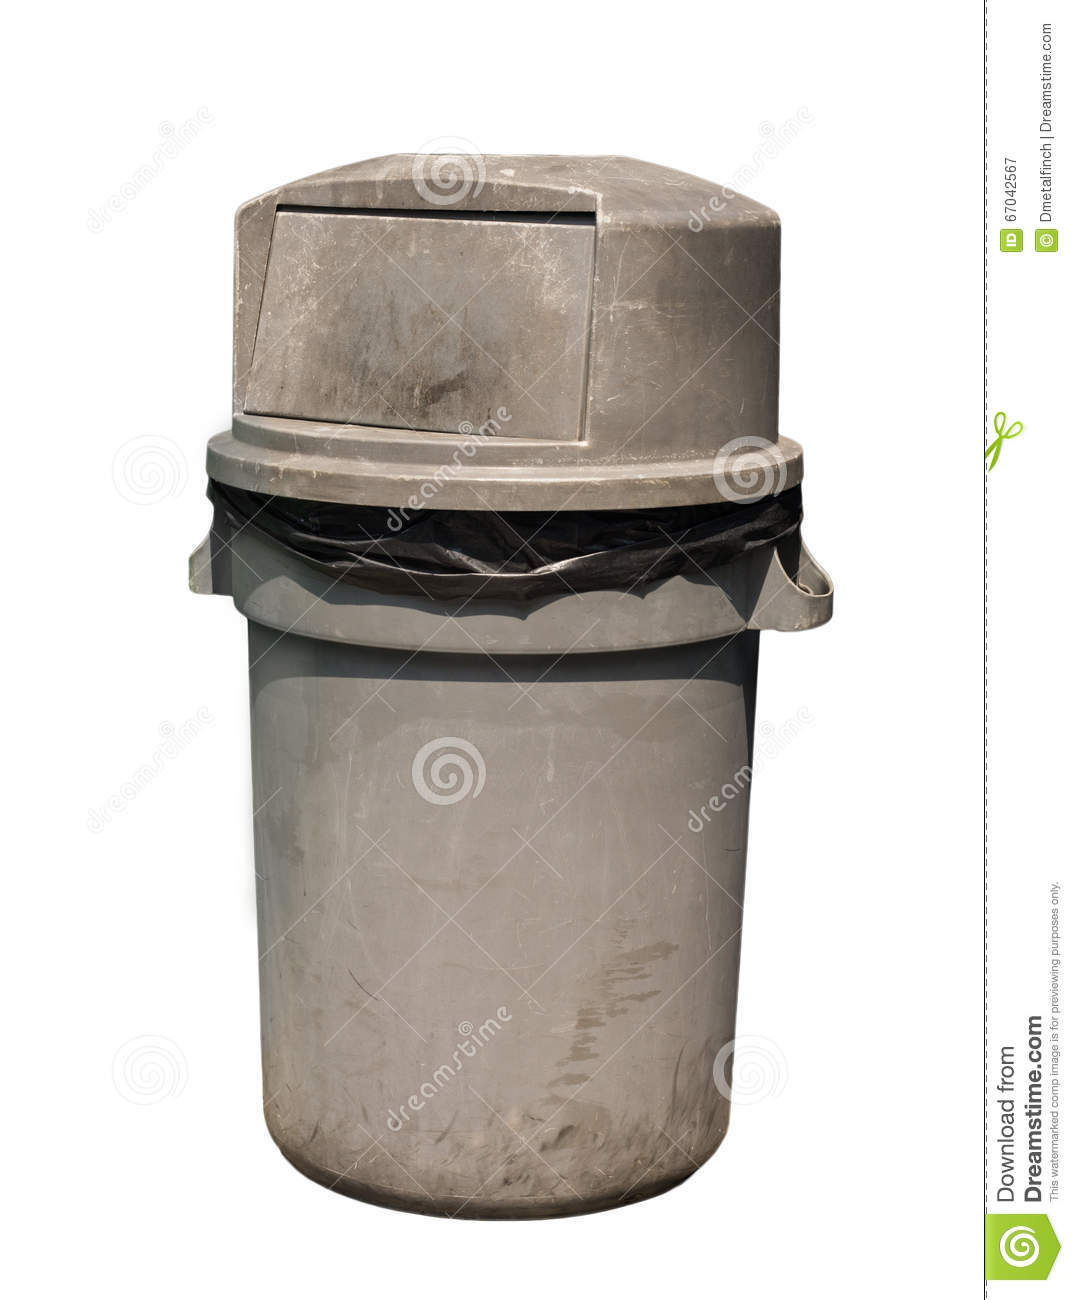 Dirty garbage can stock image. Image of background, isolated - 67042567